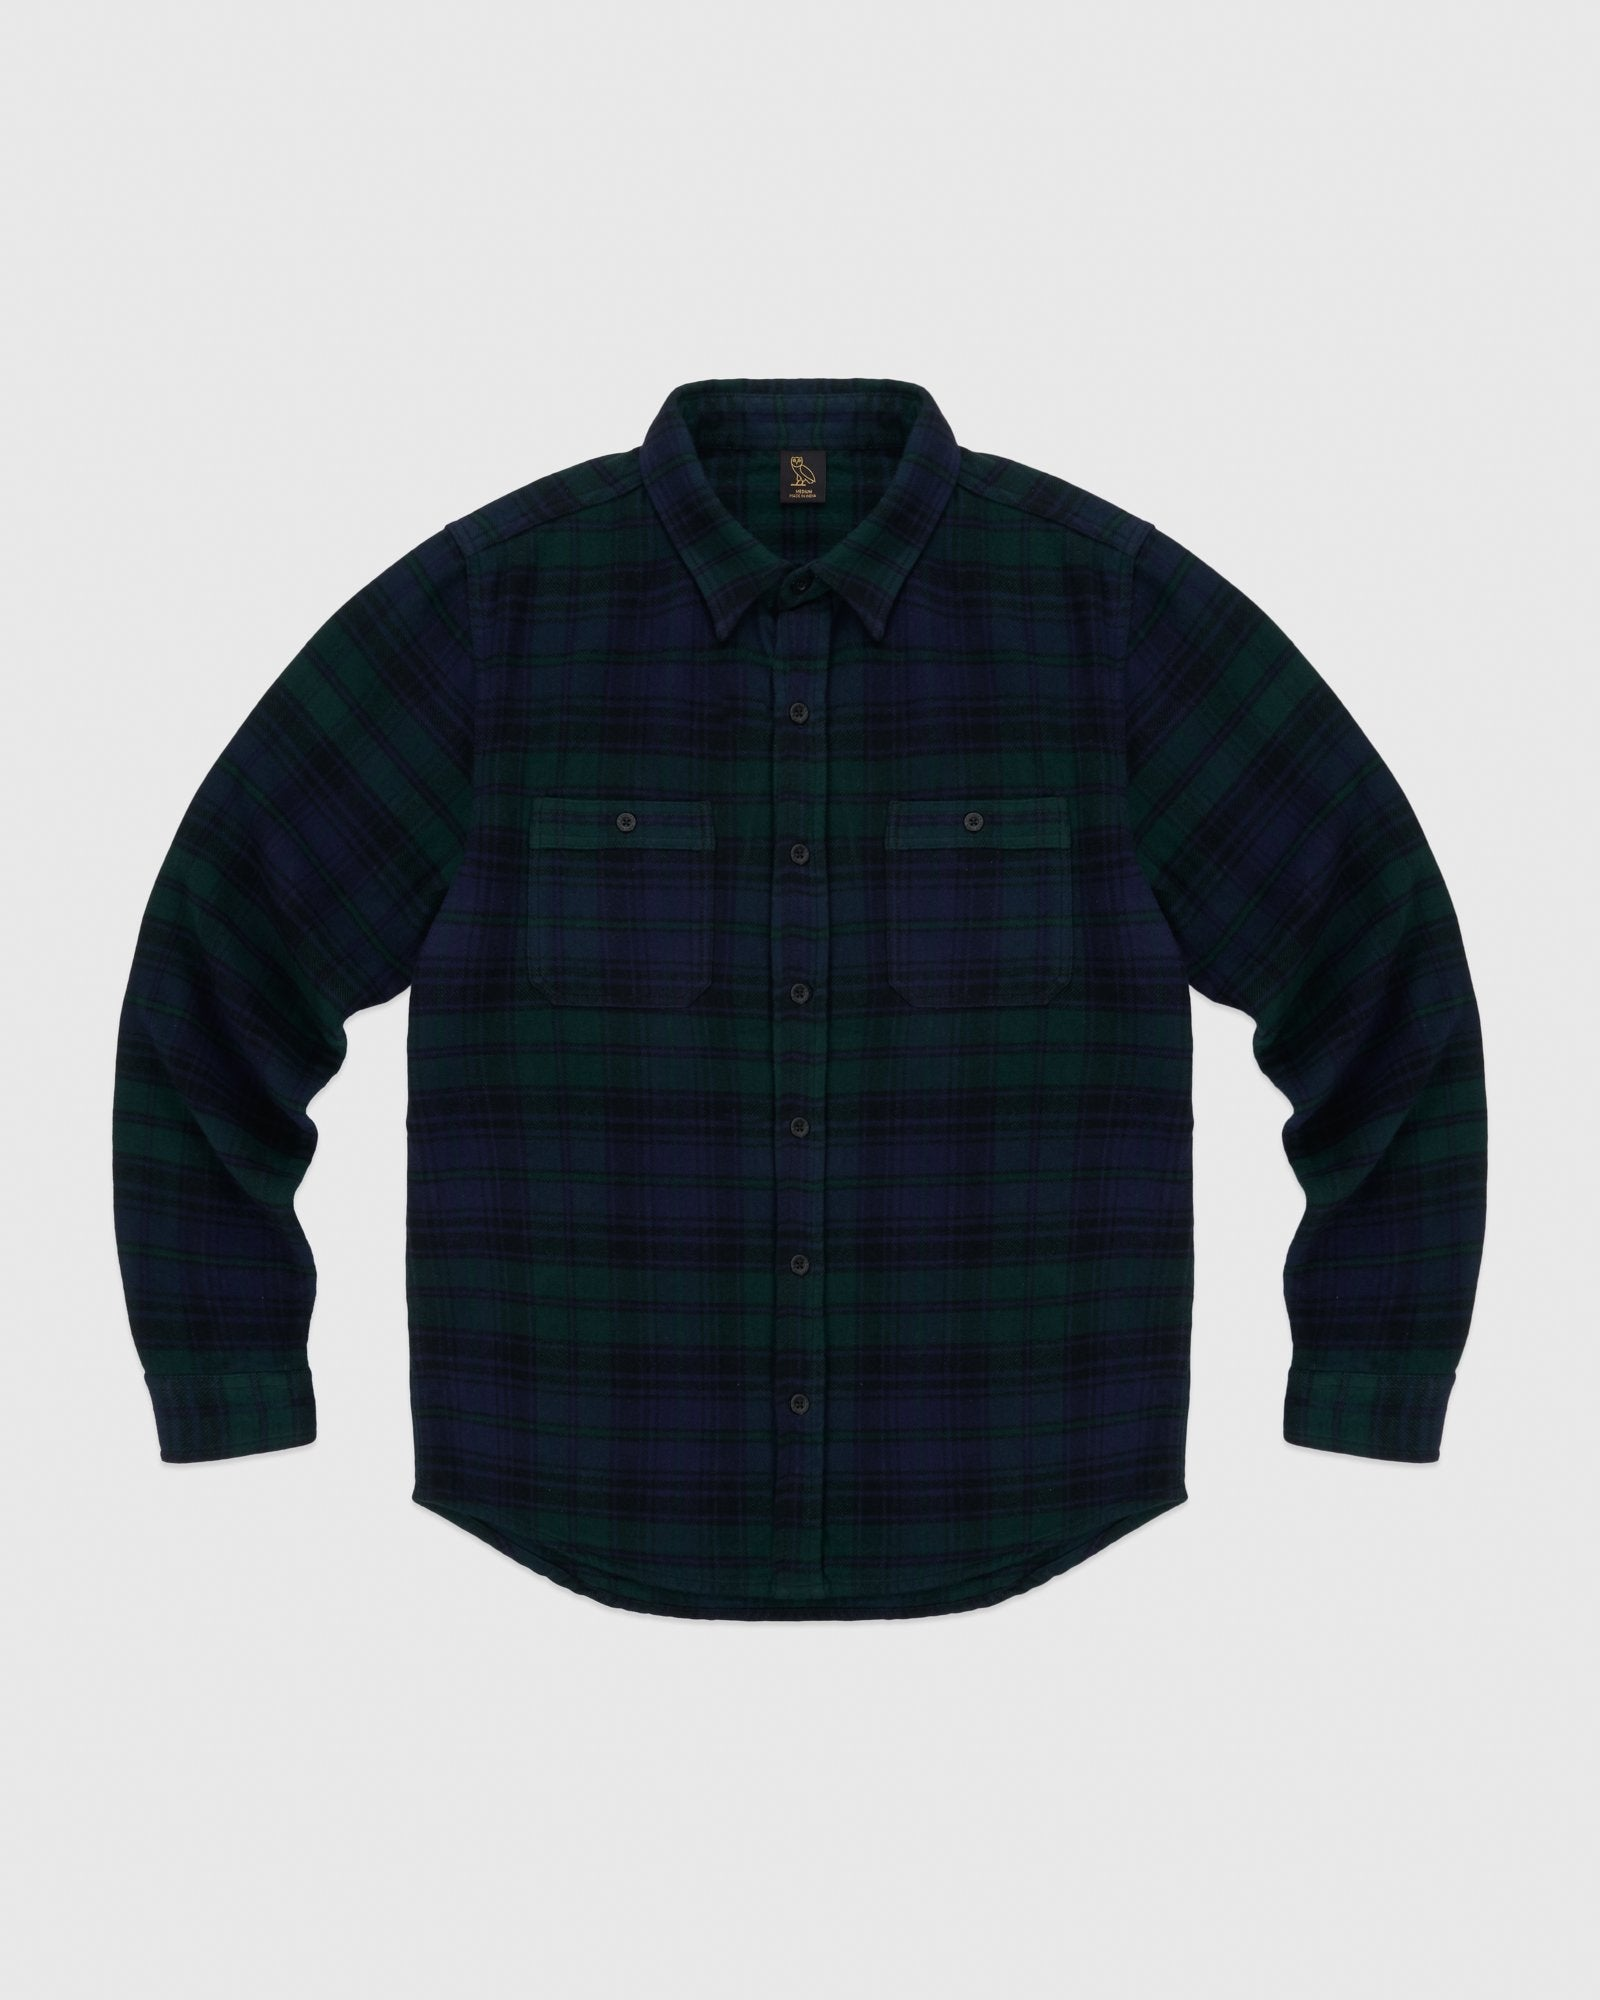 CIRCLE WORDMARK FLANNEL - BLACKWATCH IMAGE #1